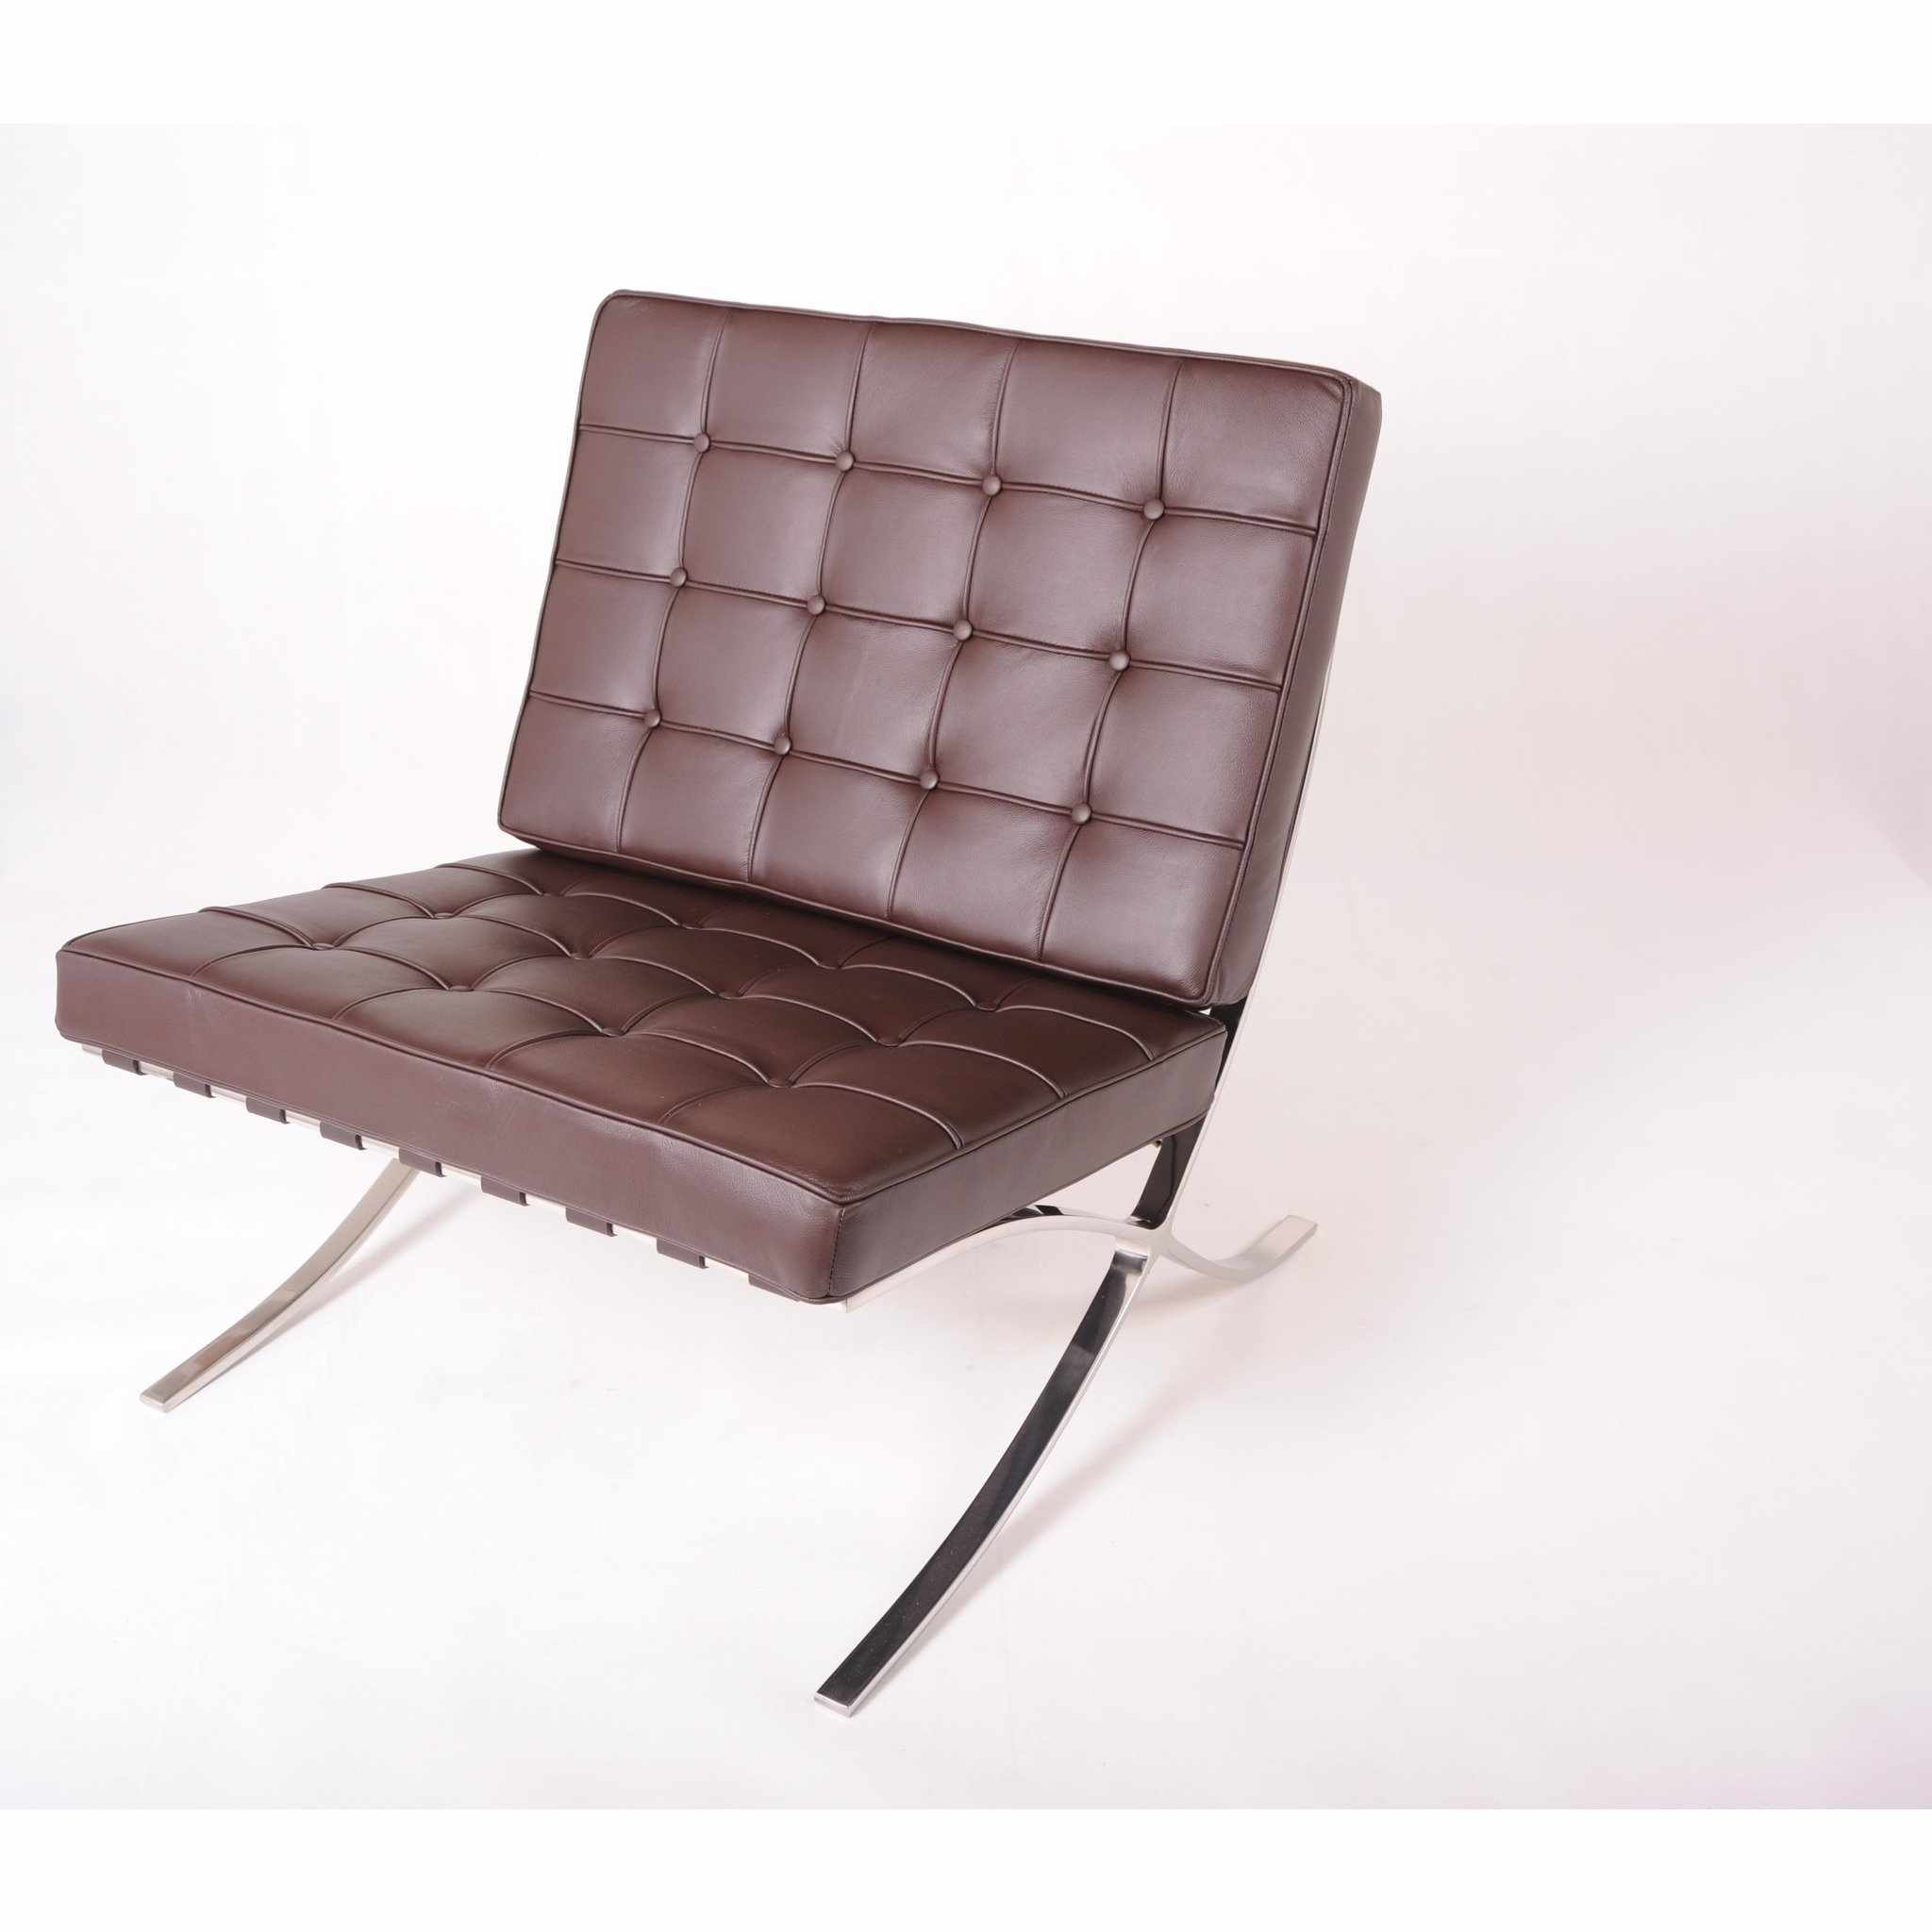 barcelona chair leather dining slipcovers cotton replica mies van der rohe best reproduction emfurn style